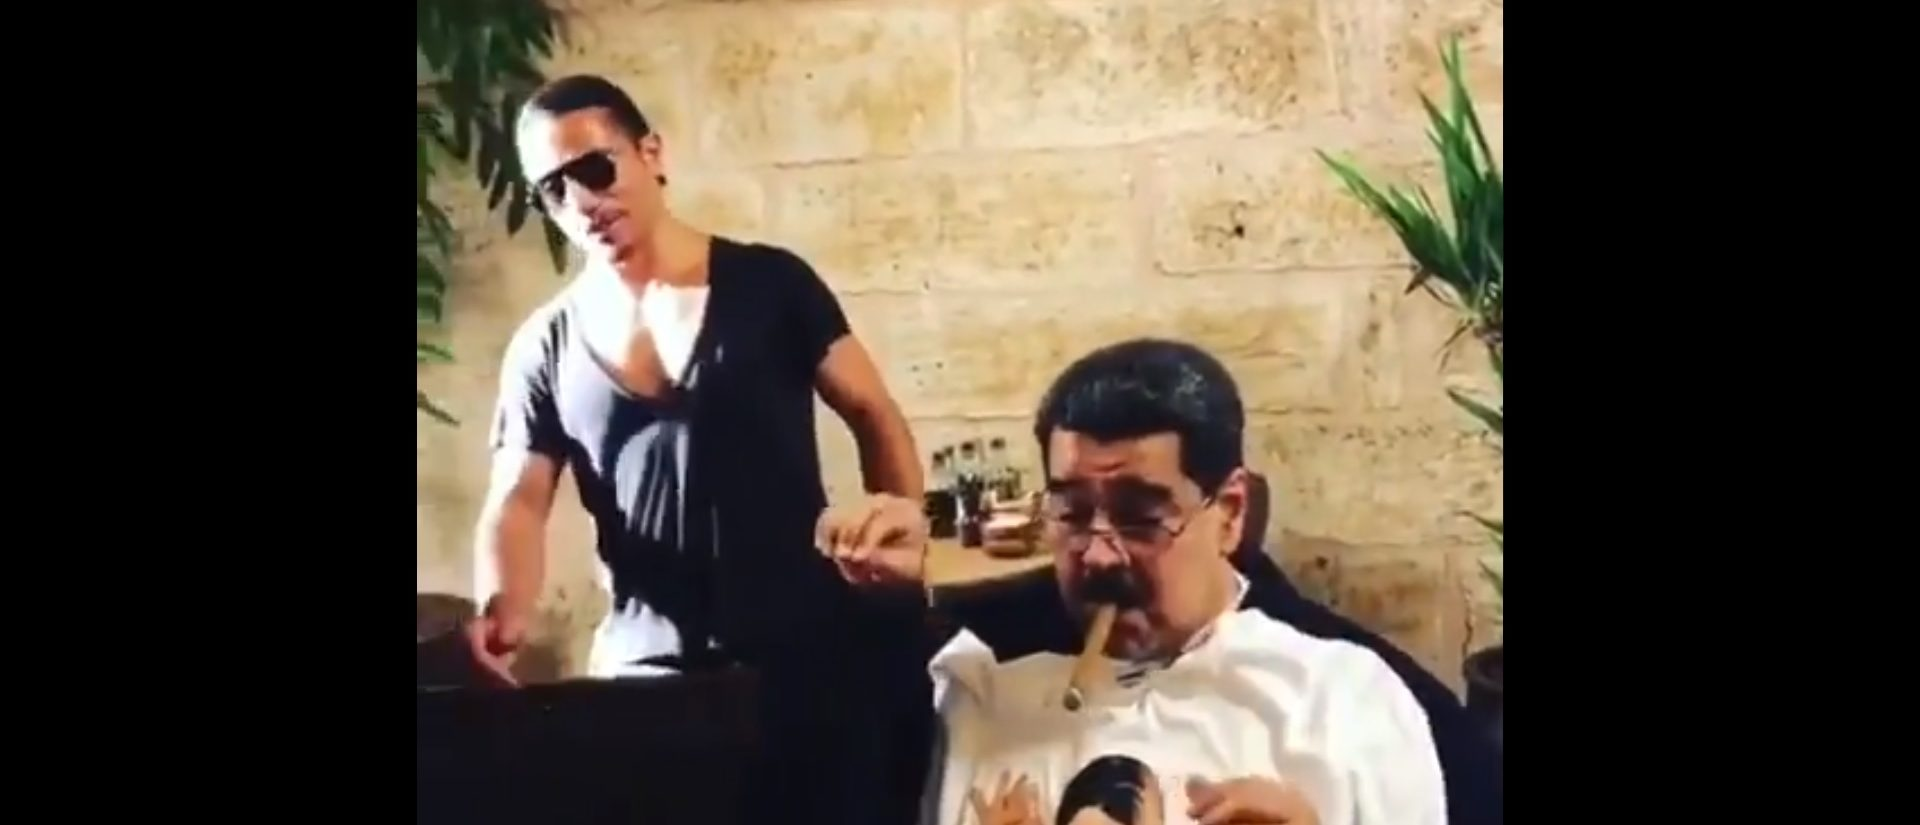 Maduro Dines At Nusr-et Steakhouse in Istanbul (Source: Screenshot/Twitter)